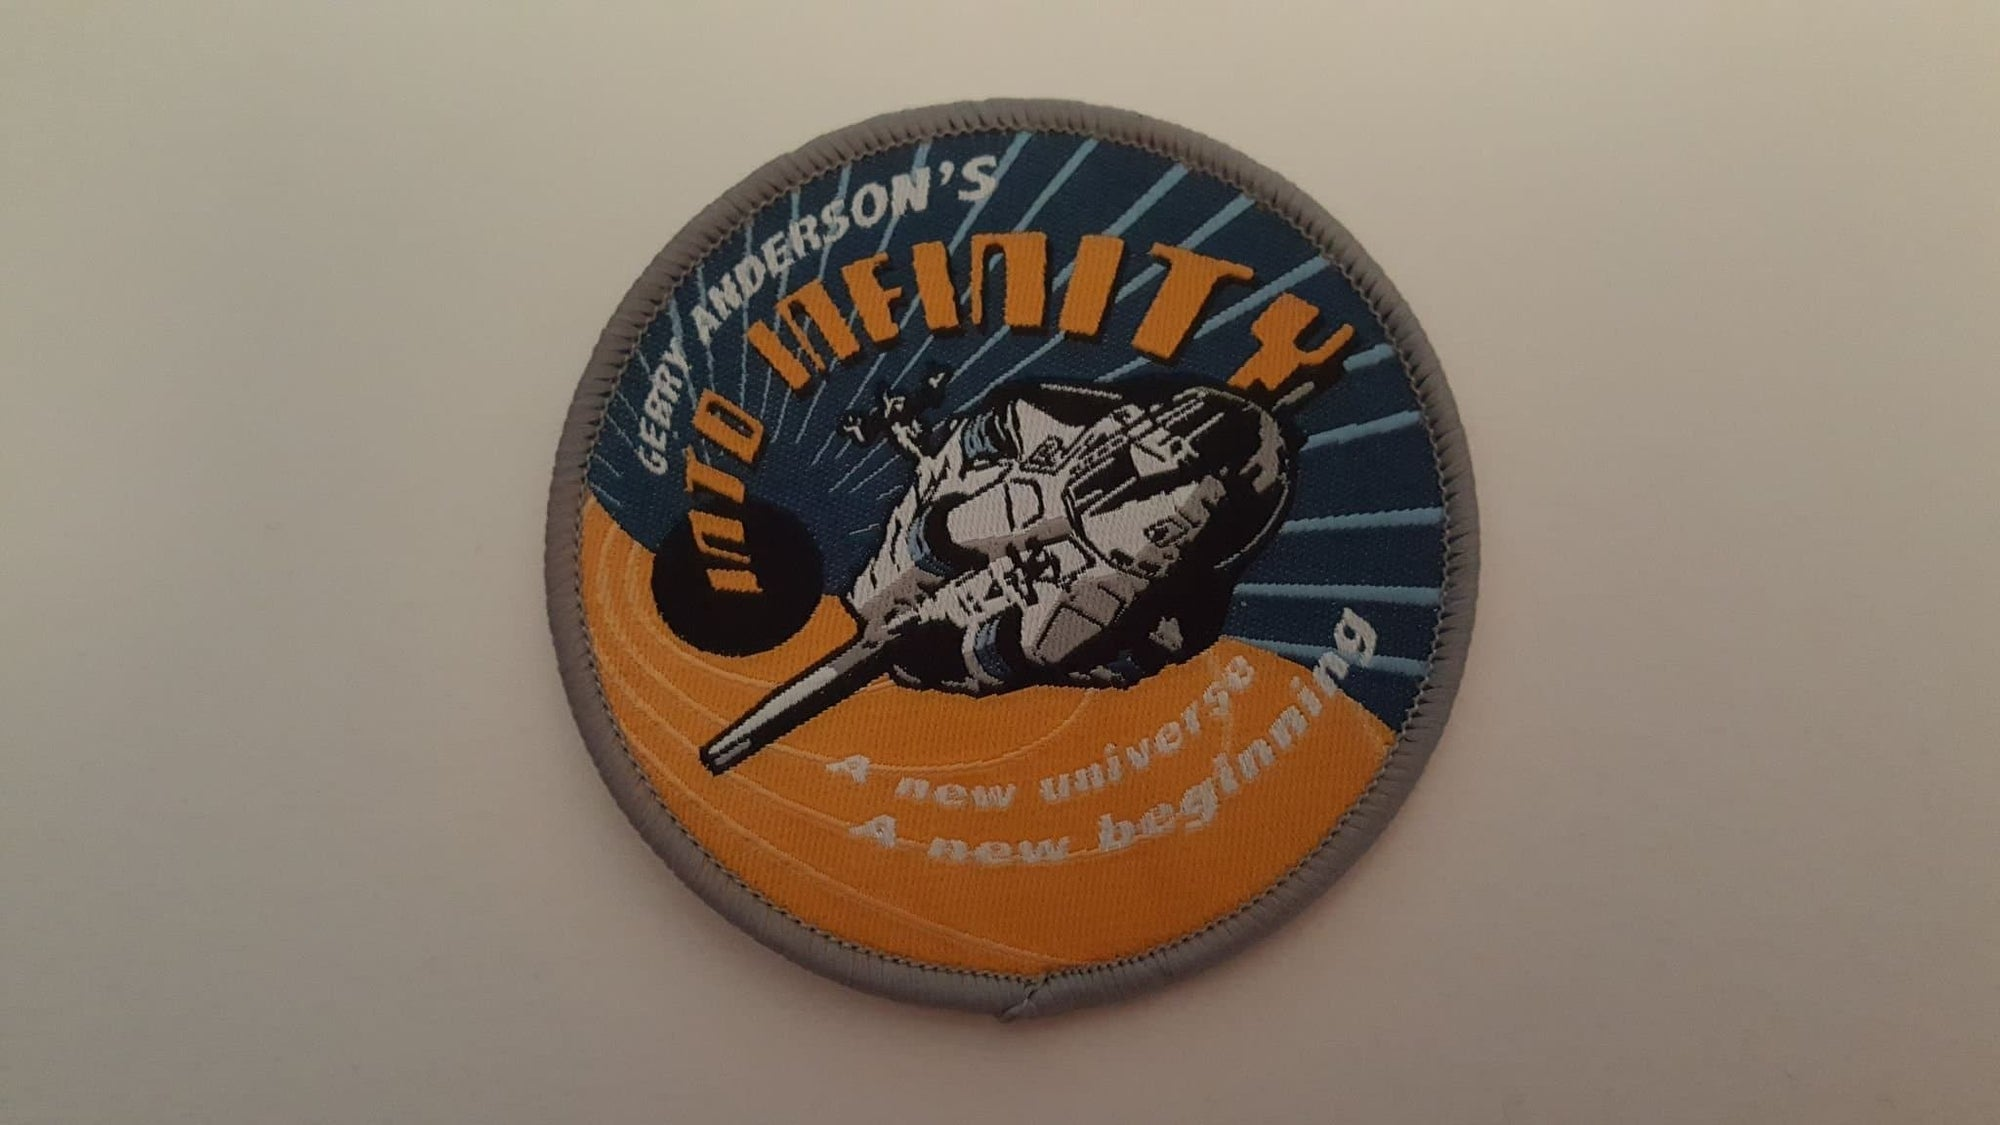 The Day After Tomorrow/ Into Infinity Patch - The Gerry Anderson Store